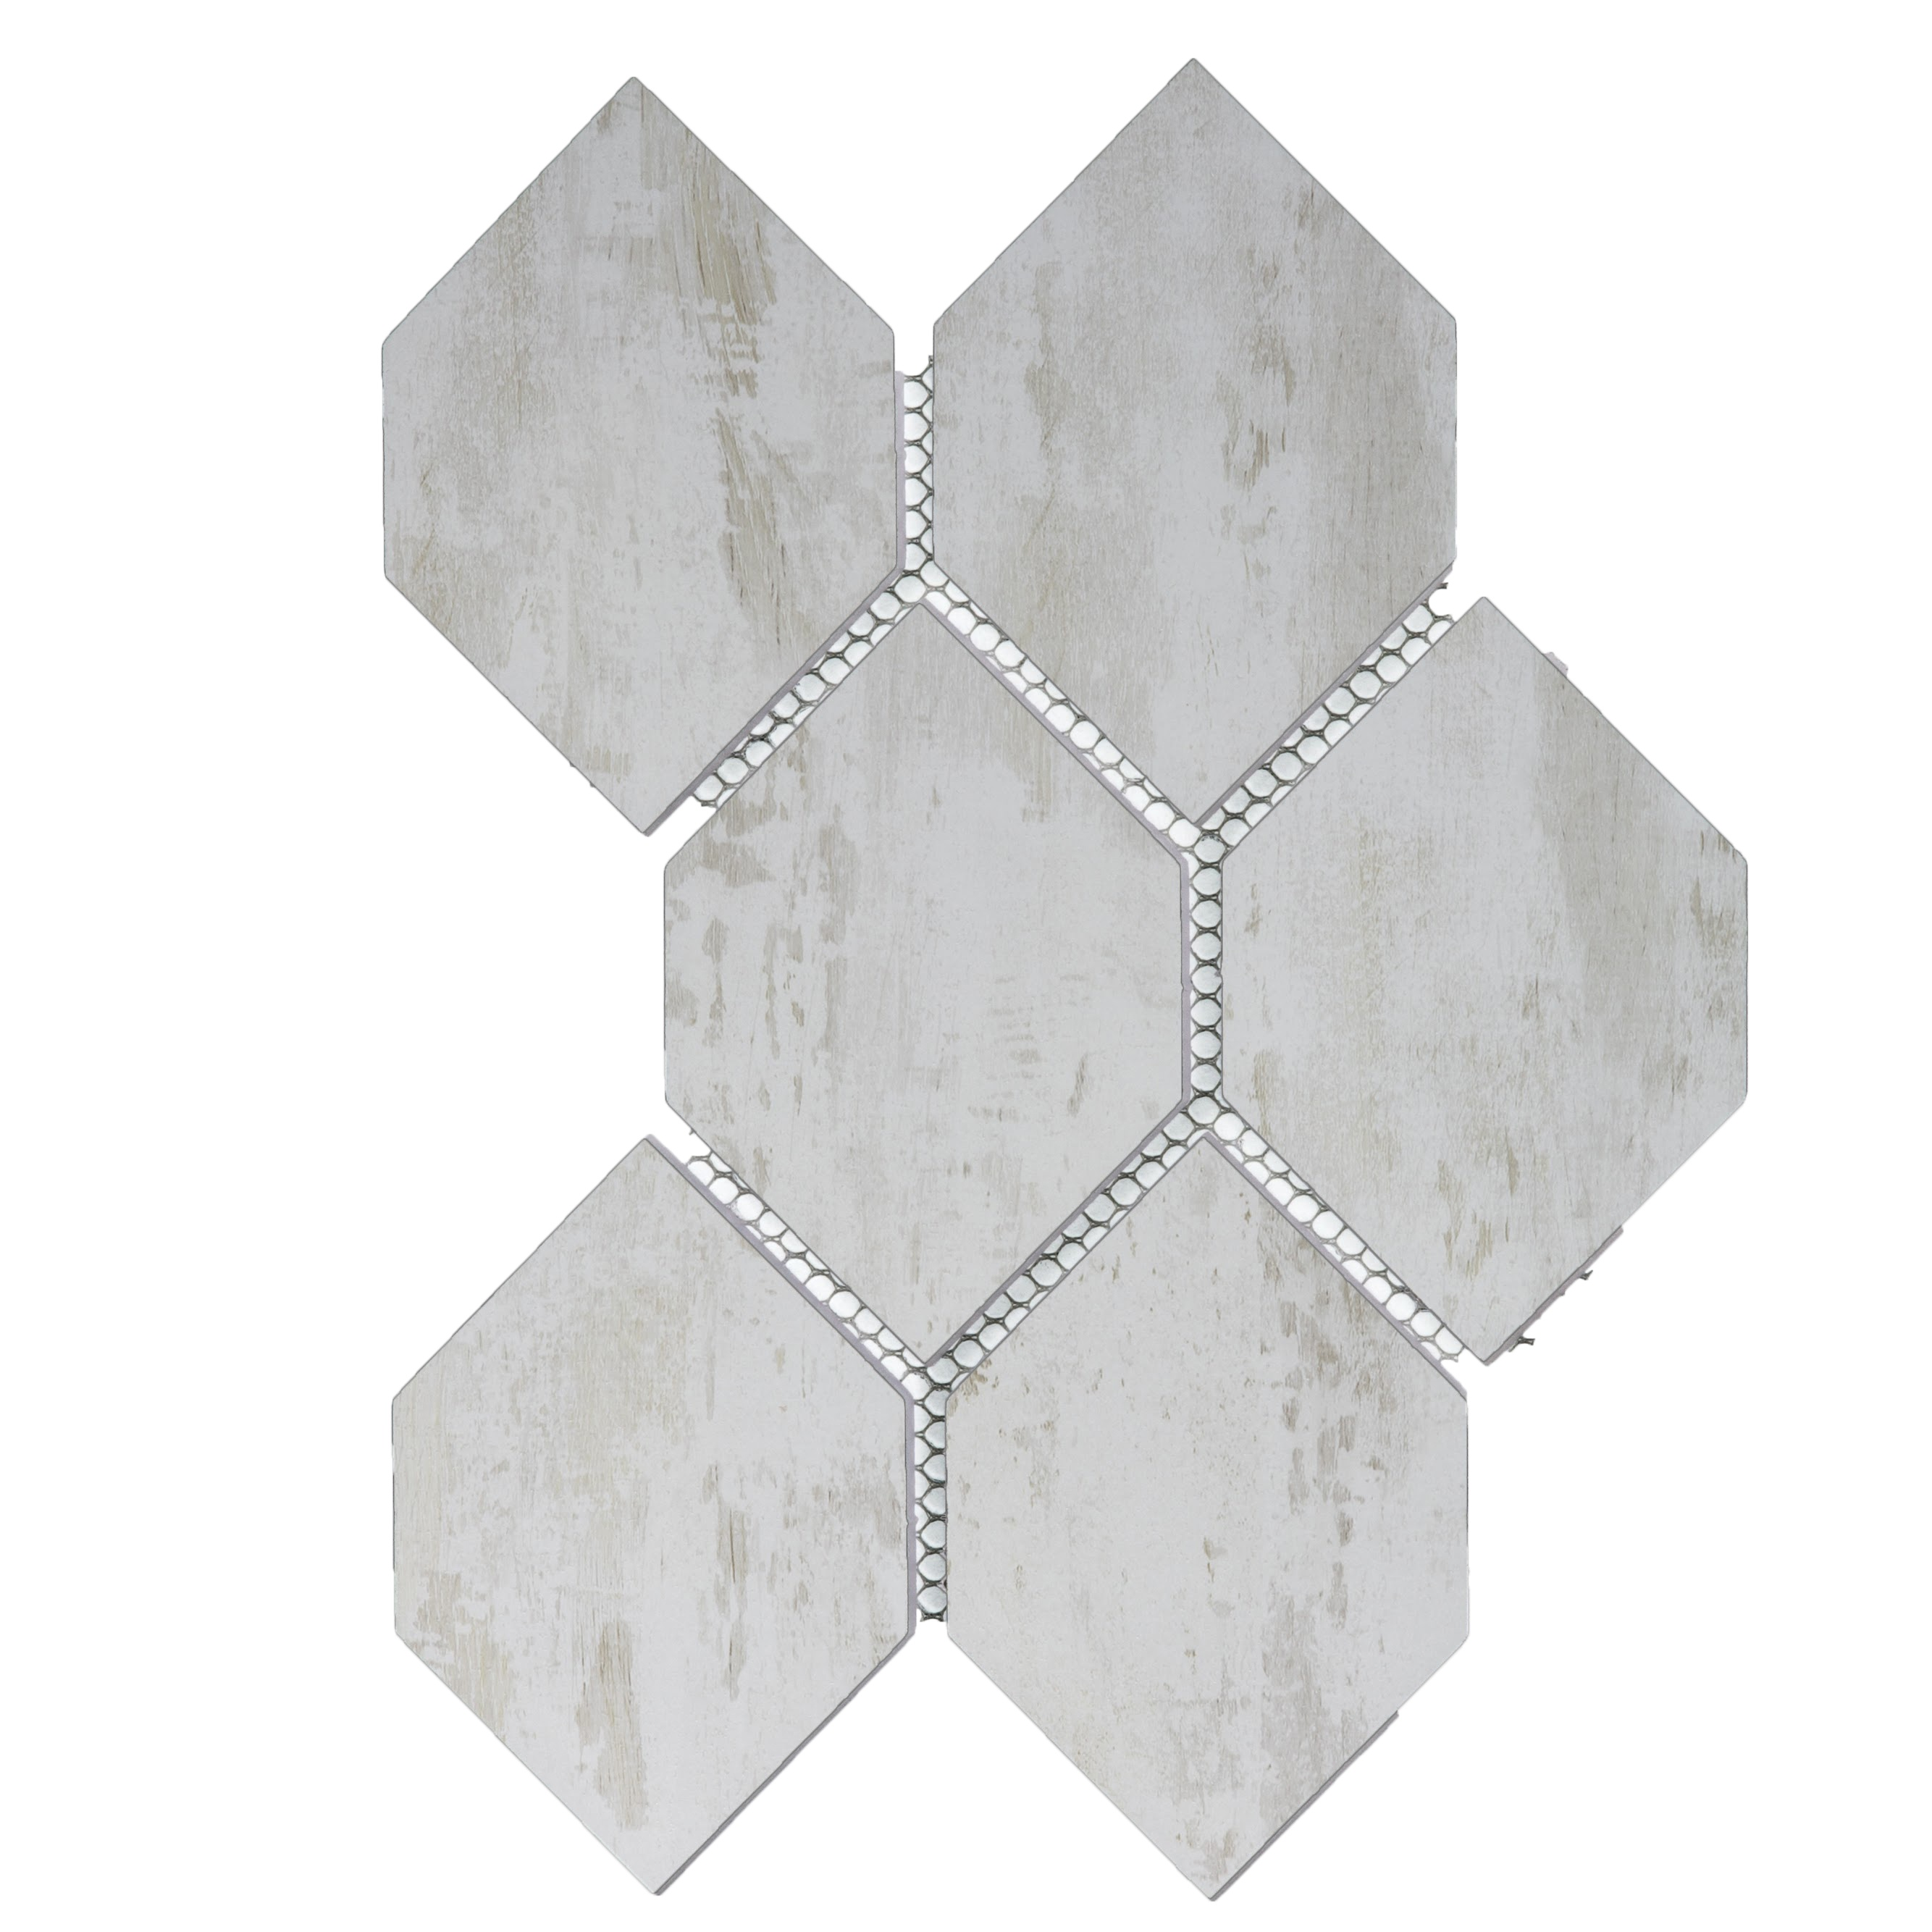 "Nature 3.5"" x 5.125"" Matte White Glass Honeycomb Waterjet Backsplash Mosaic Wall Tile"